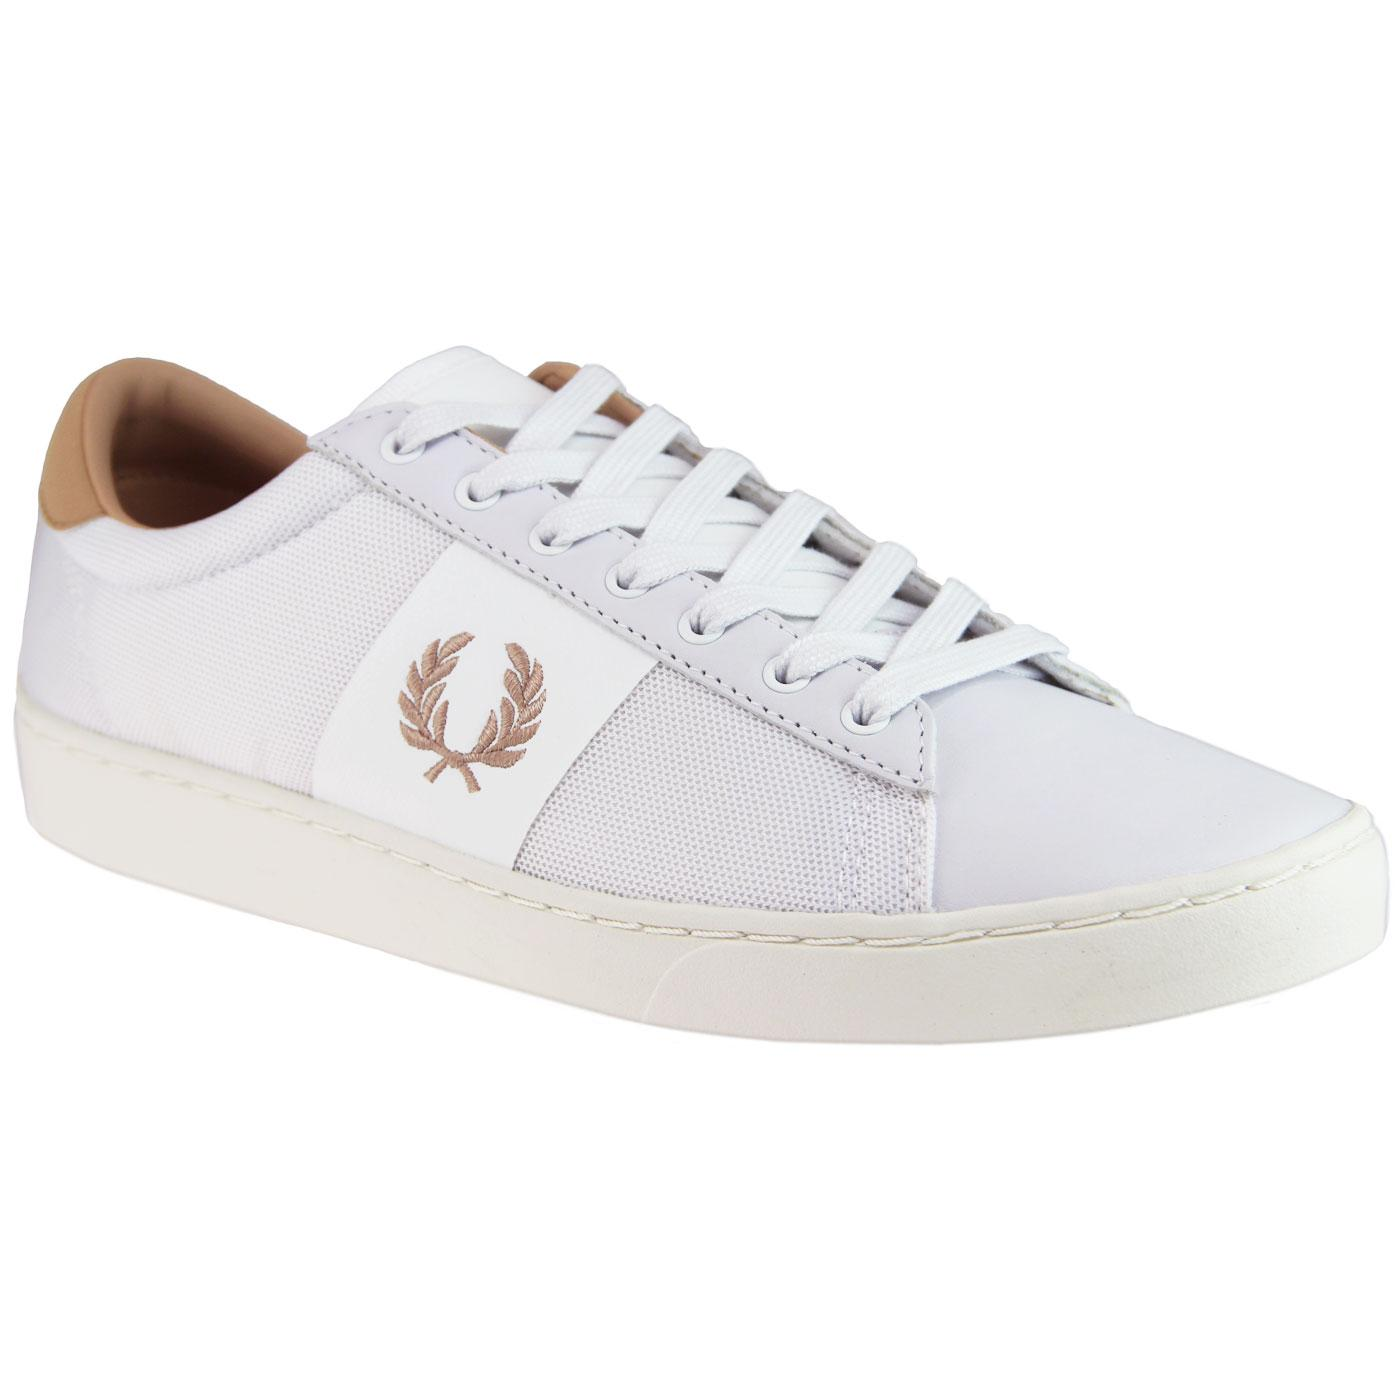 Spencer FRED PERRY Retro Mesh Leather Trainers W